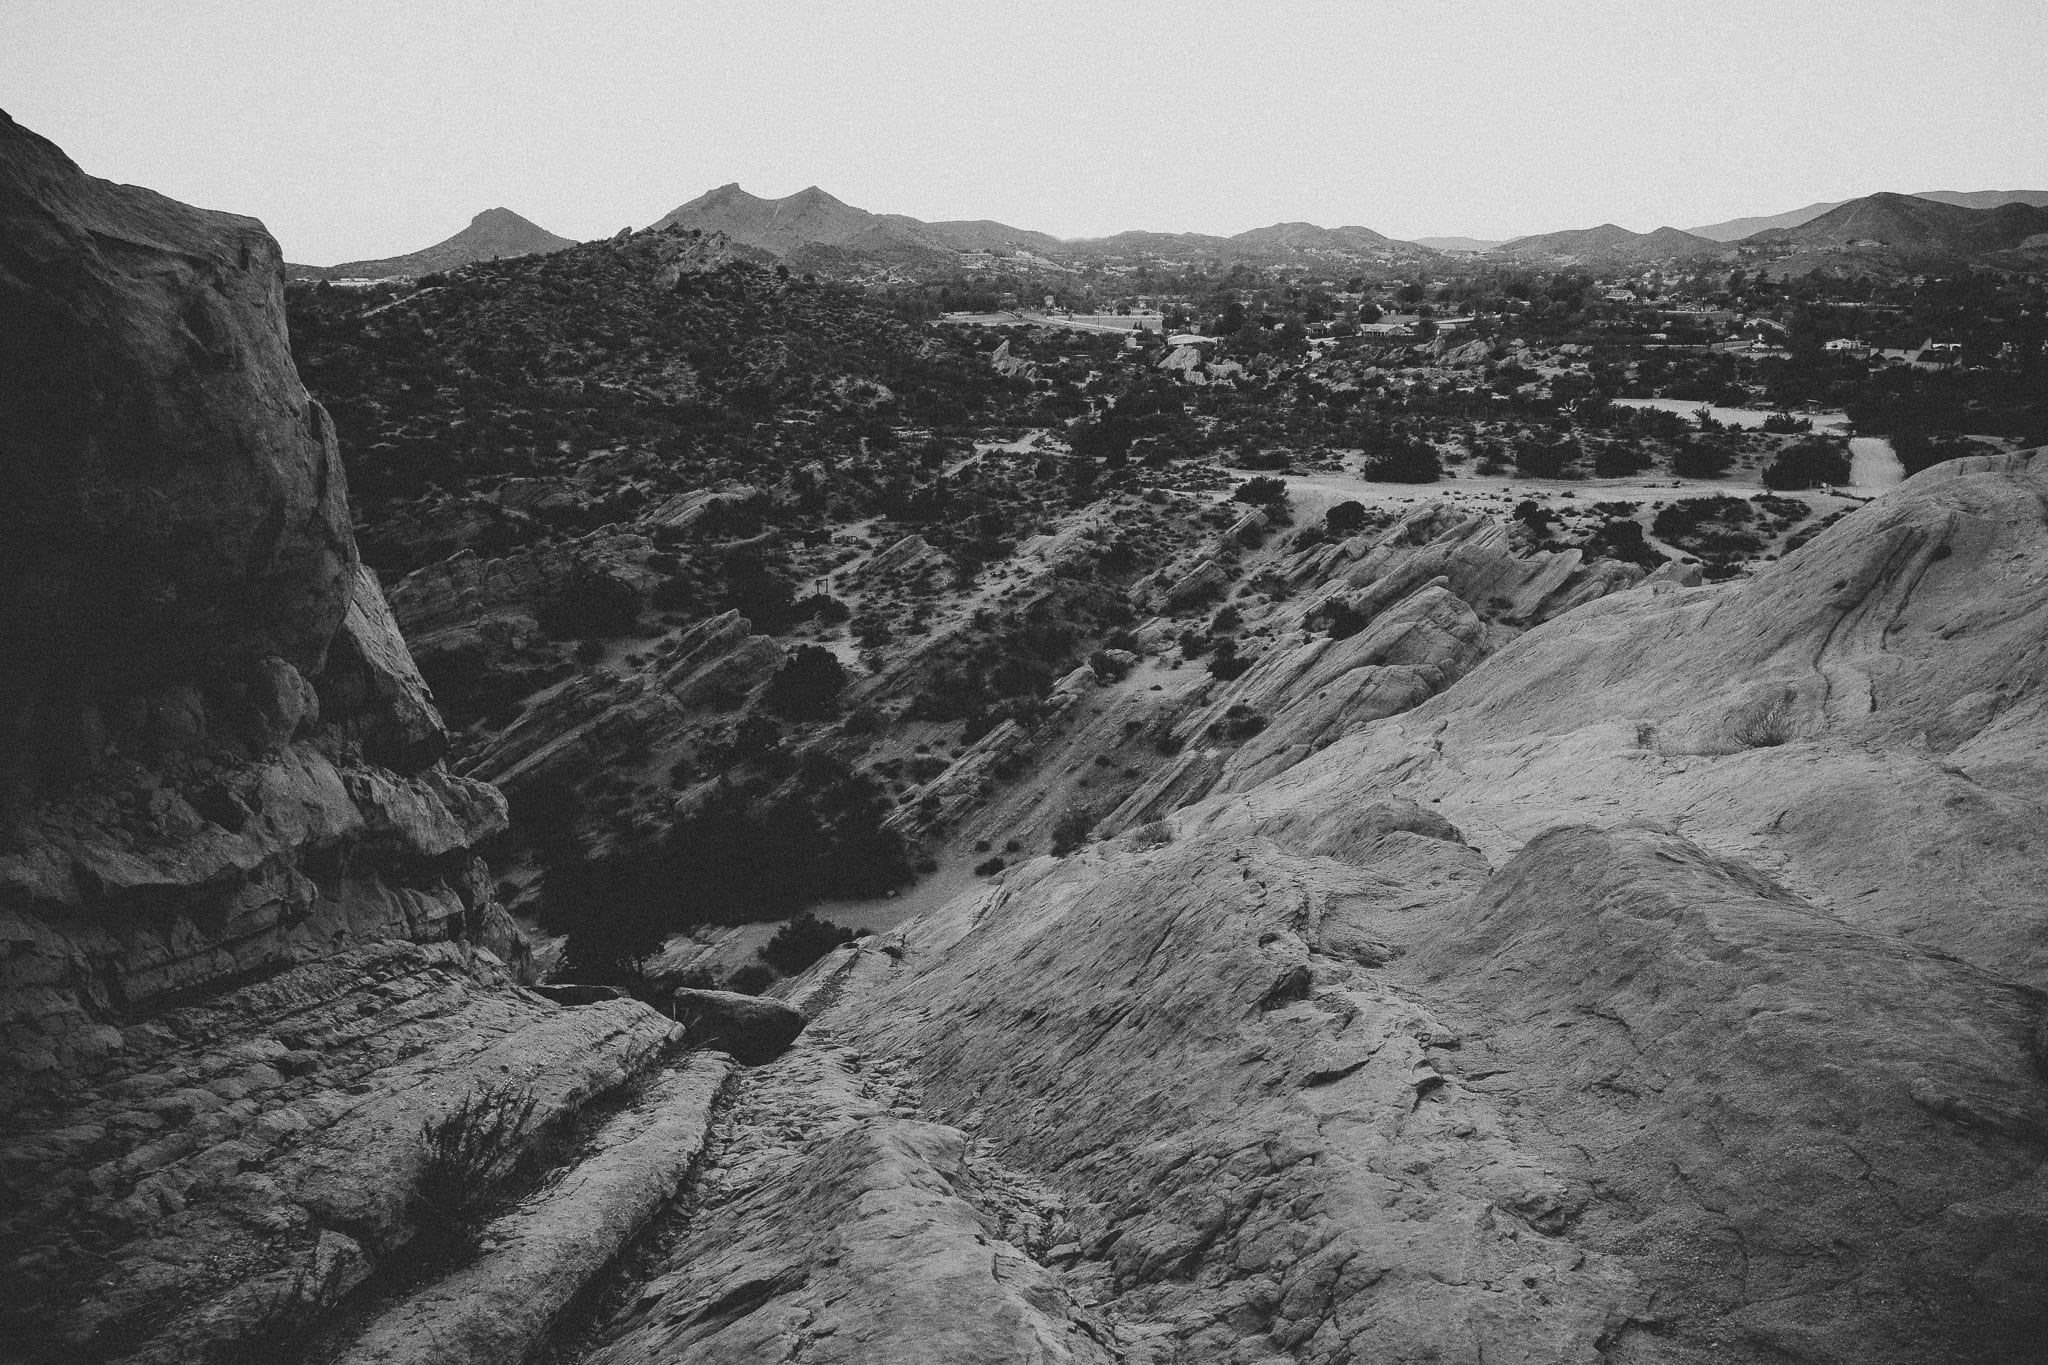 vasquez-rocks-la-california-lifestyle-wedding-photographer-20